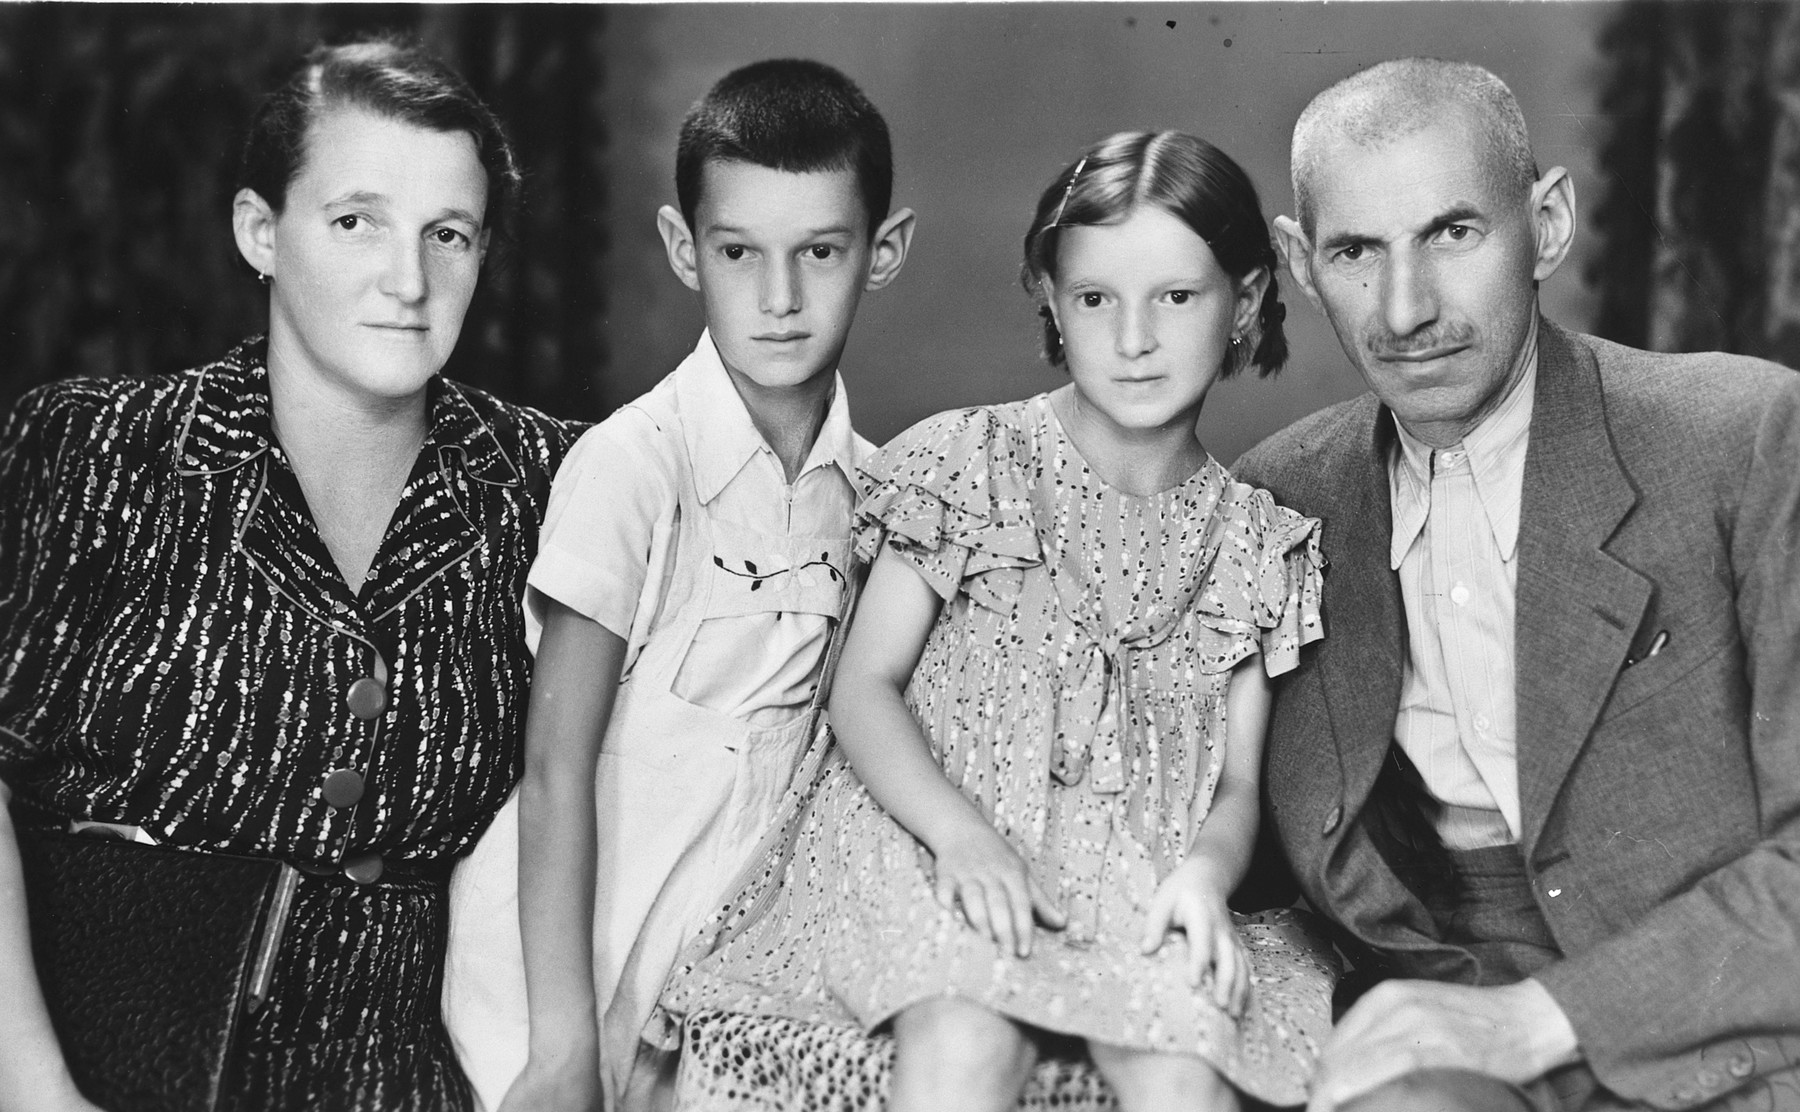 Studio portrait of a Serbian-Jewish family, all of whom later perished in Auschwitz.  Pictured are the brother of Iren Fisch and his family.  From left to right are Ilonka, Hugo, Terike, and Marton Janos Manheim.